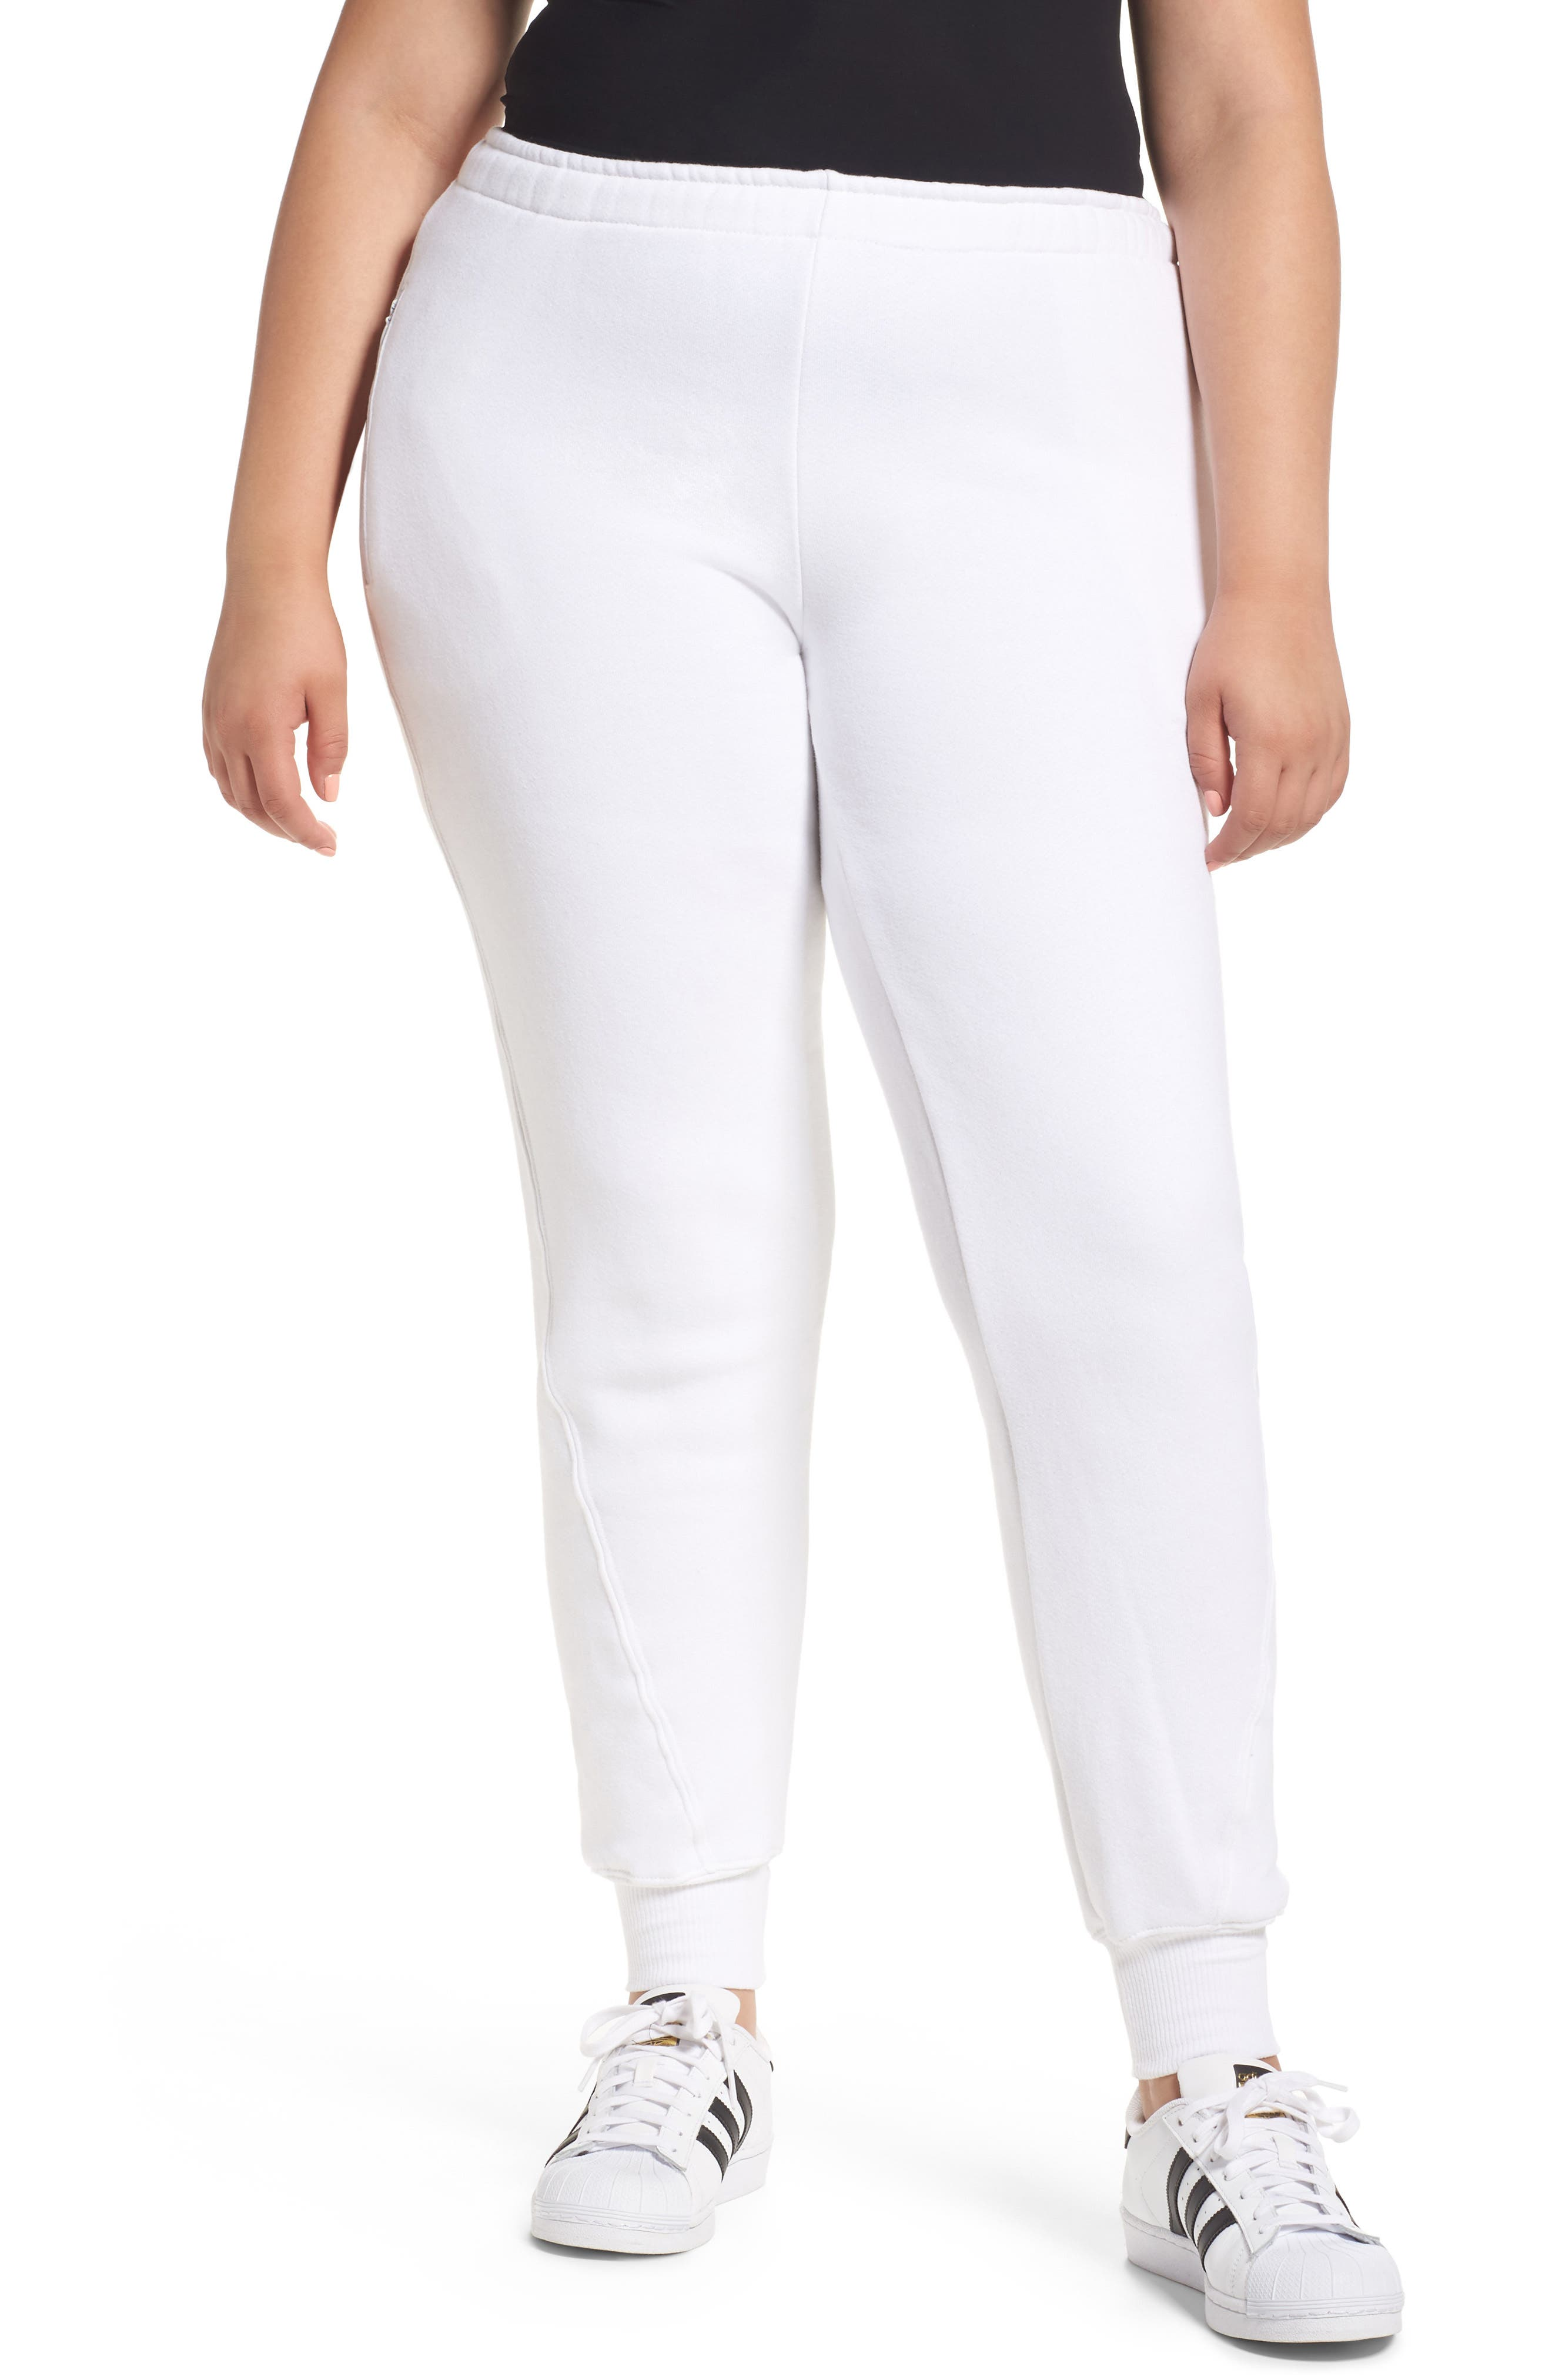 Good Sweats The Twisted Seam Pants,                             Alternate thumbnail 5, color,                             Off White